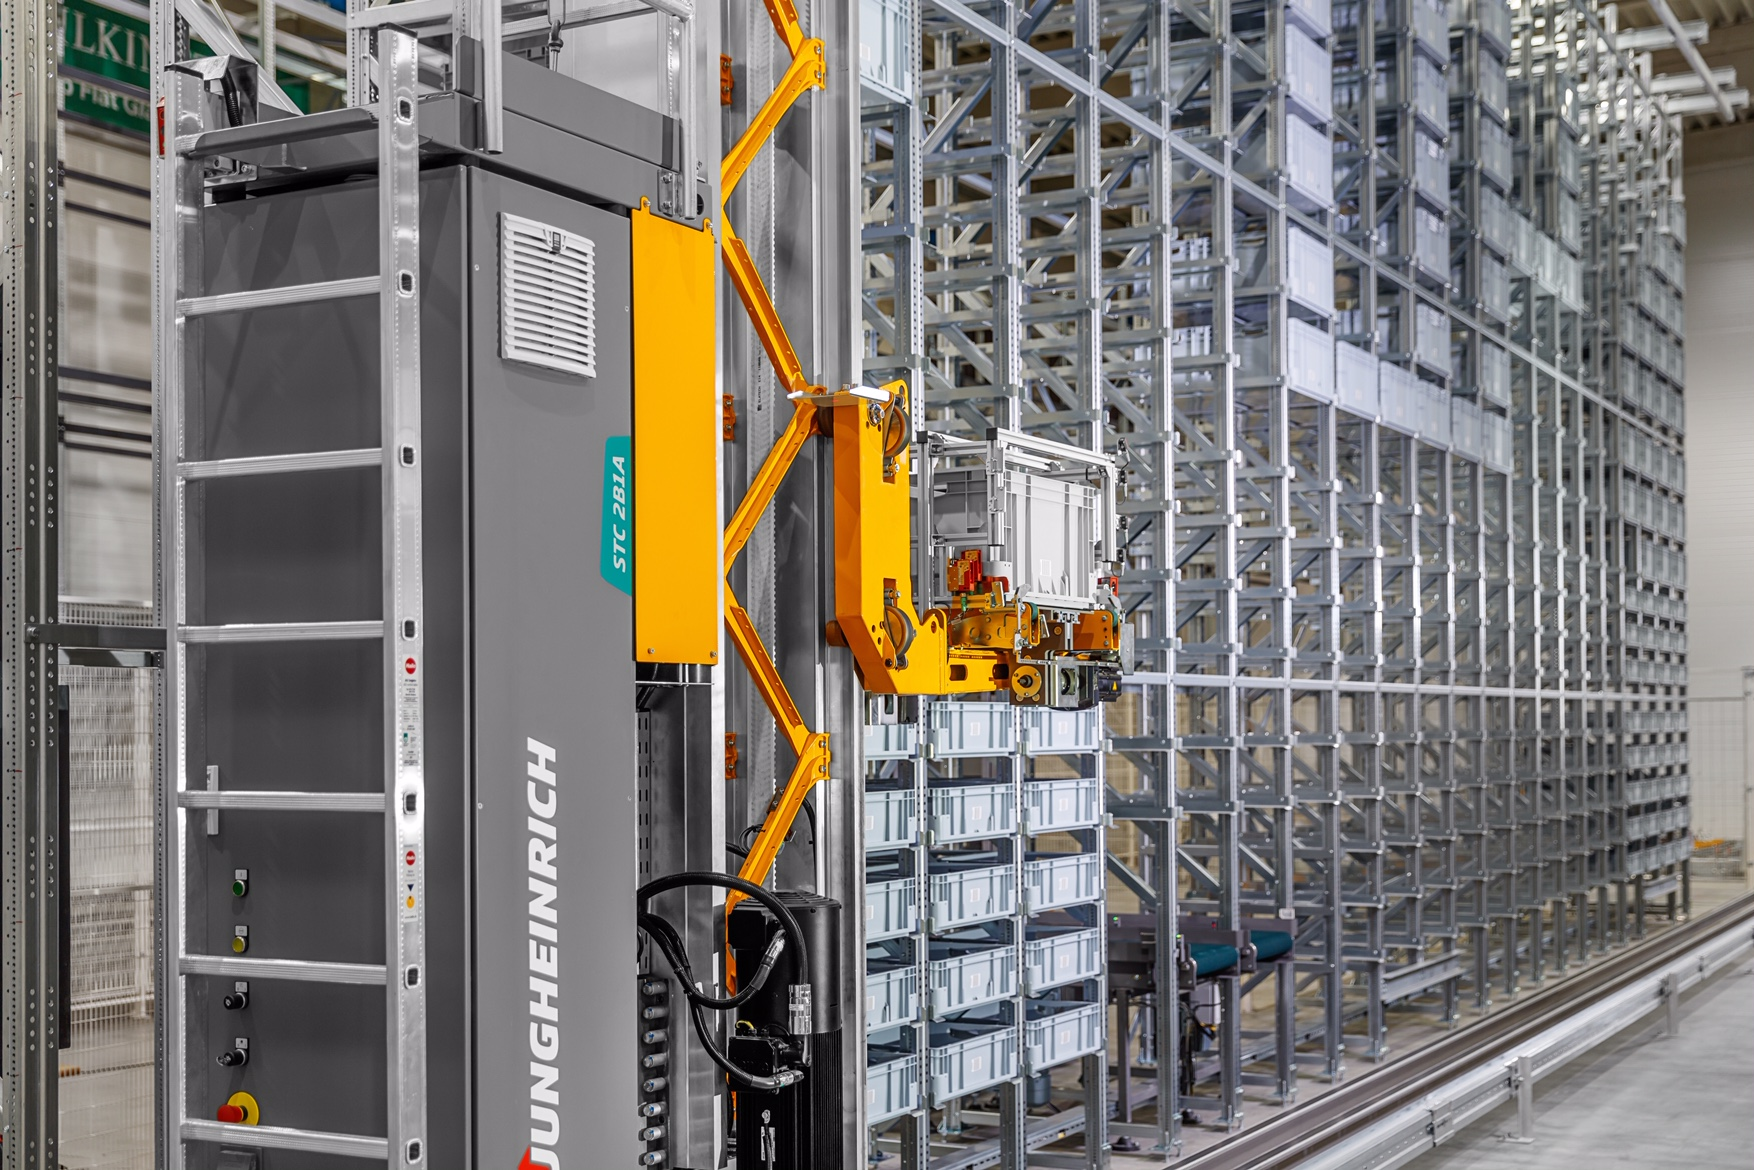 Jungheinrich – Major exhibitor at LogiMAT 2019